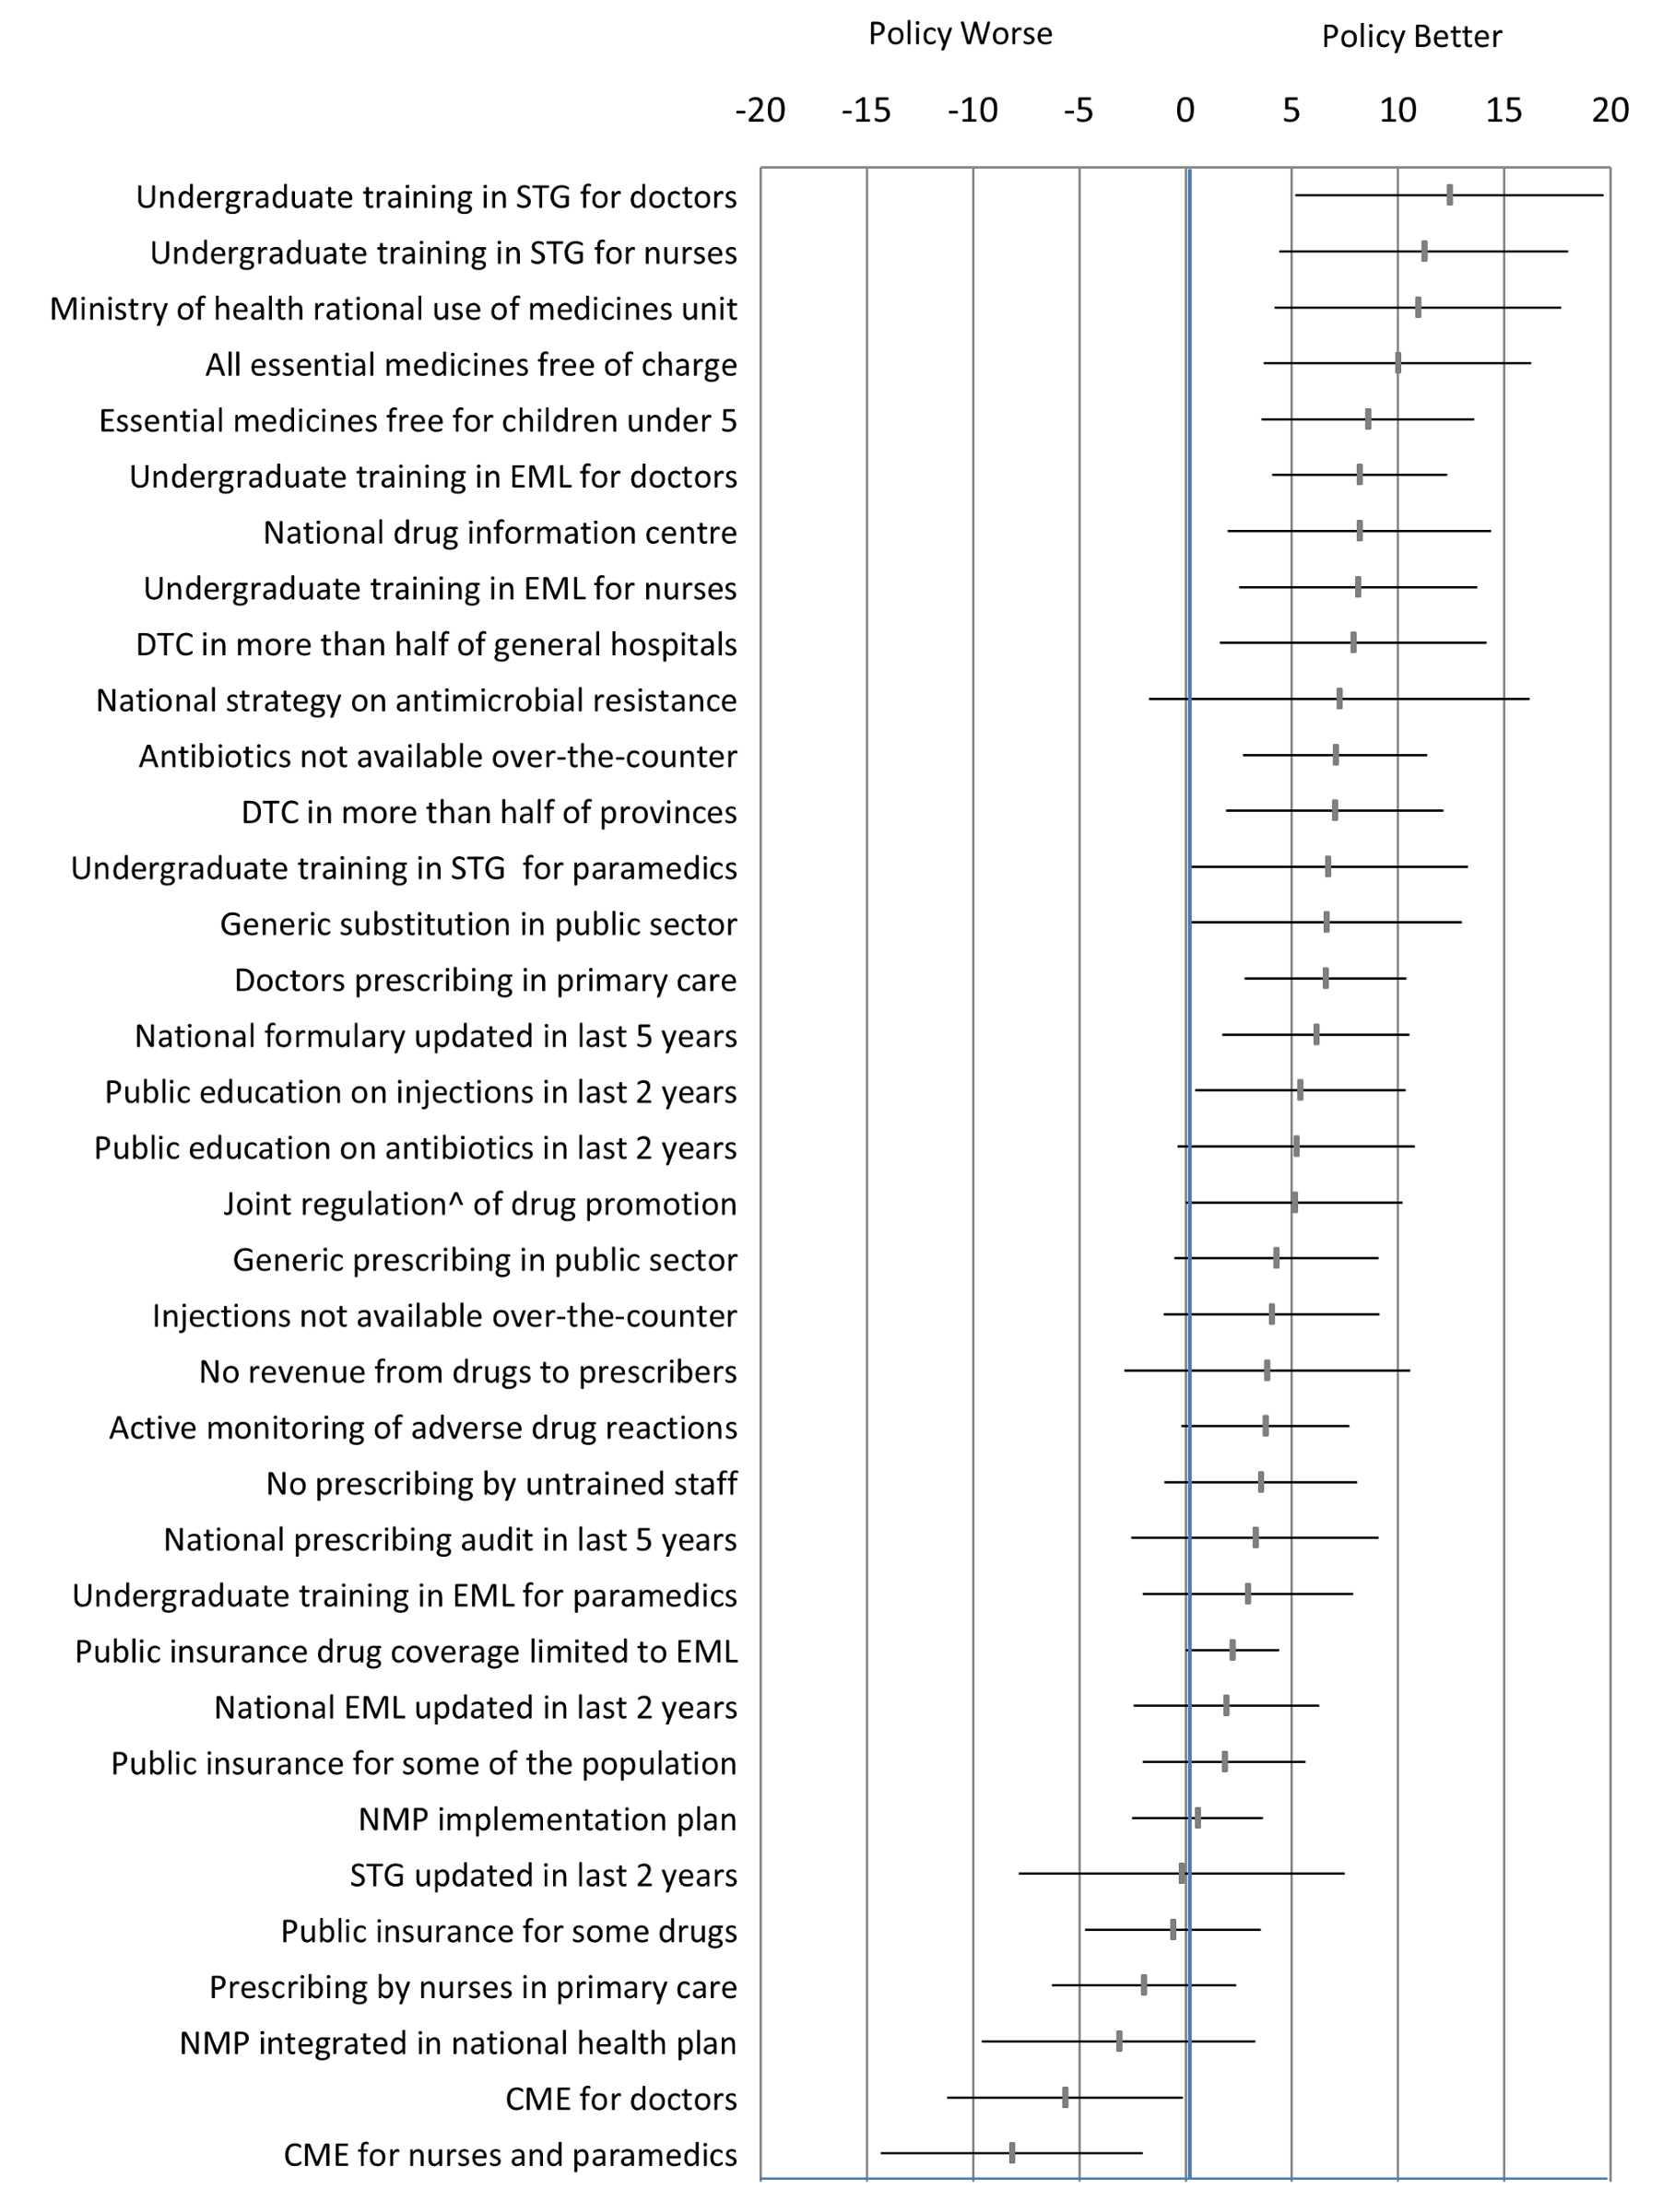 Differences in quality use of medicines between countries that did versus did not report implementation of specific medicine policies.